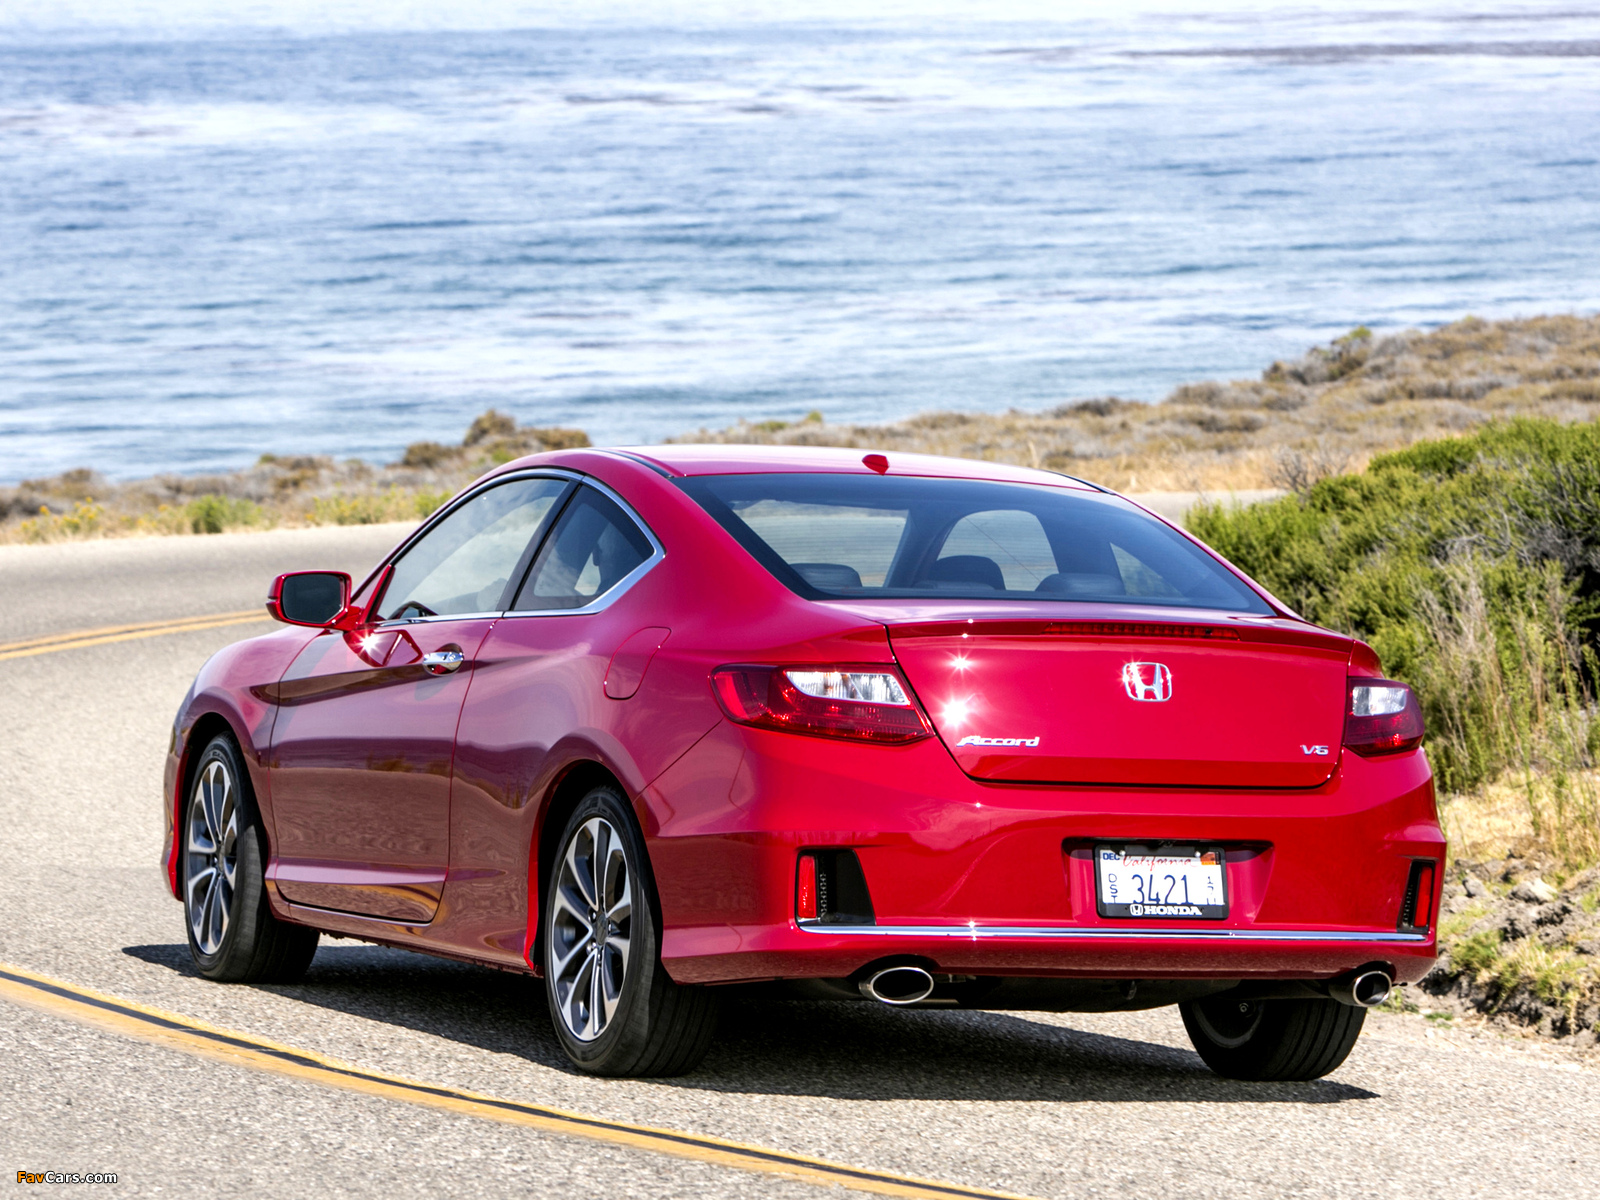 Honda Accord Ex L V6 Coupe 2012 Wallpapers 1600x1200